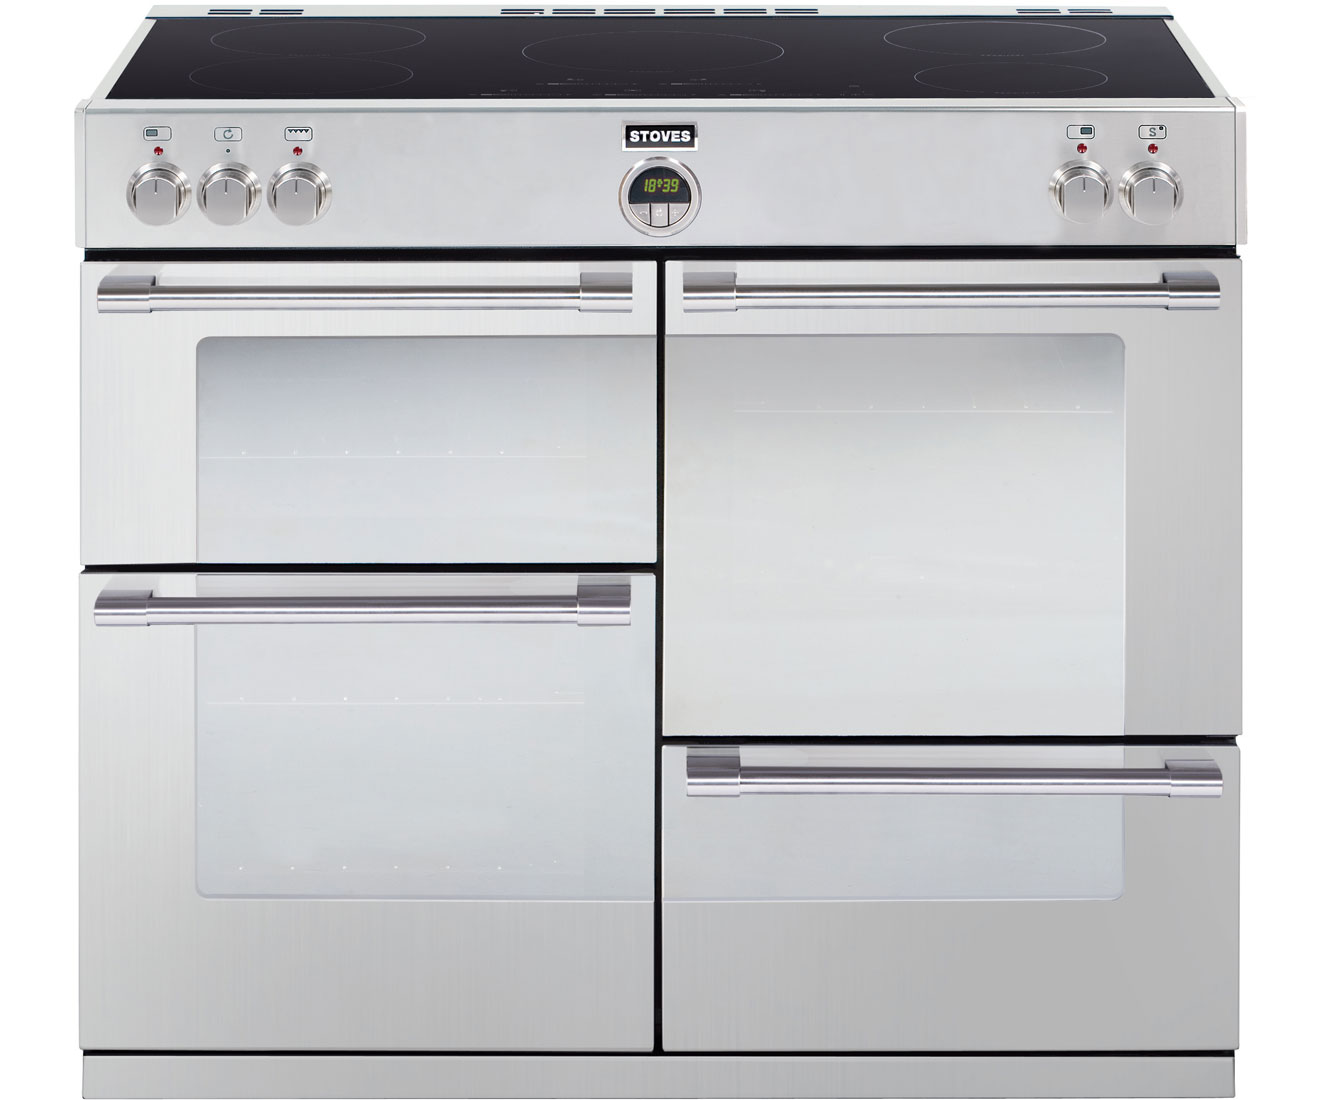 Stoves STERLING1100Ei 110cm Electric Range Cooker with Induction Hob - Stainless Steel